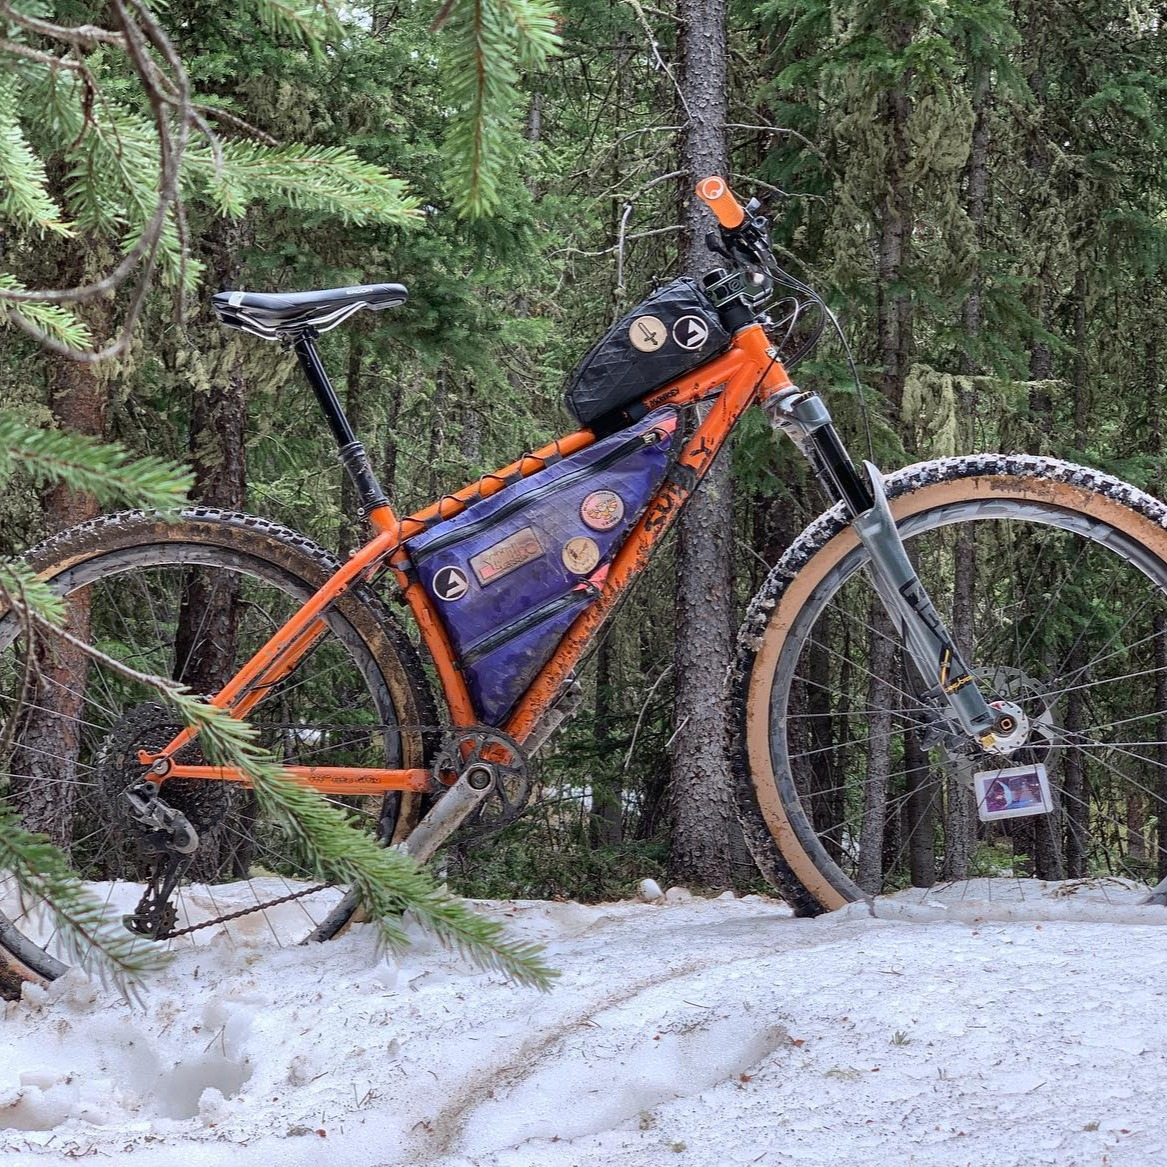 Surly Karate Monkey in the wild